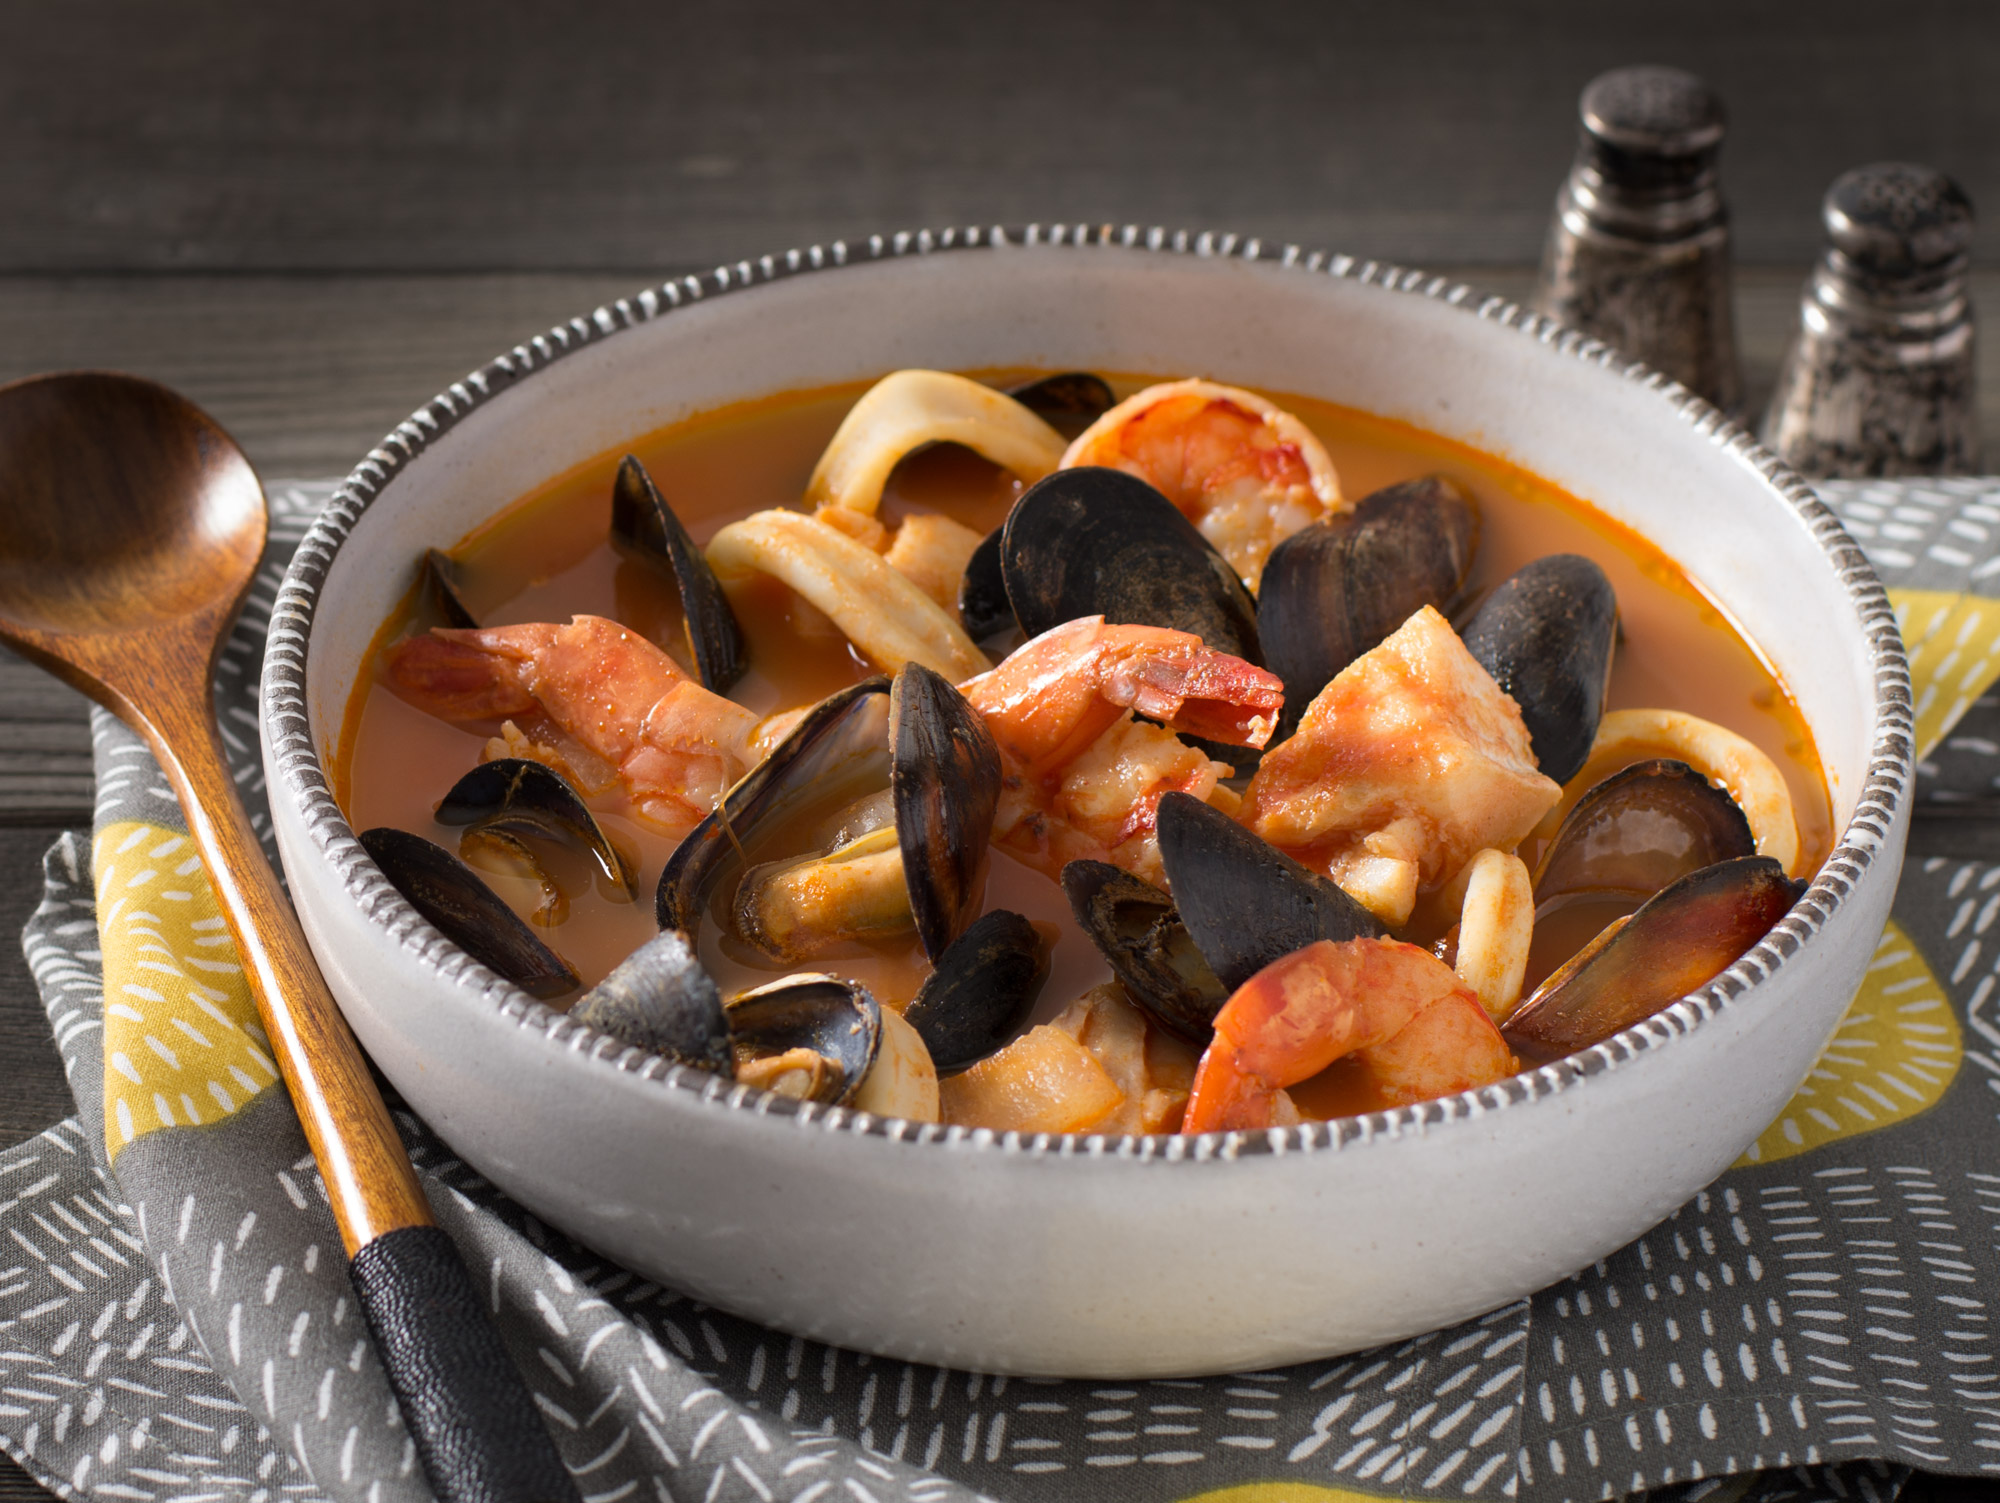 Seafood stew with mussels, calamari and shrimp